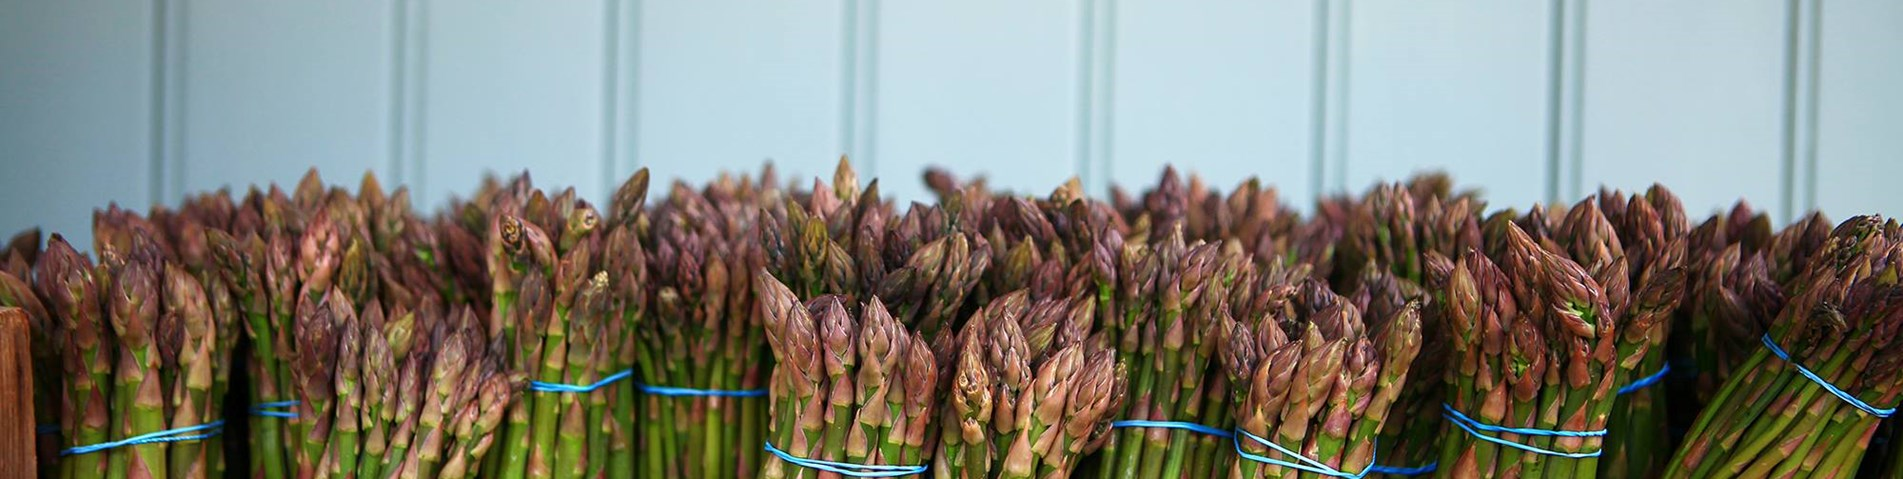 asparagus in box.jpg